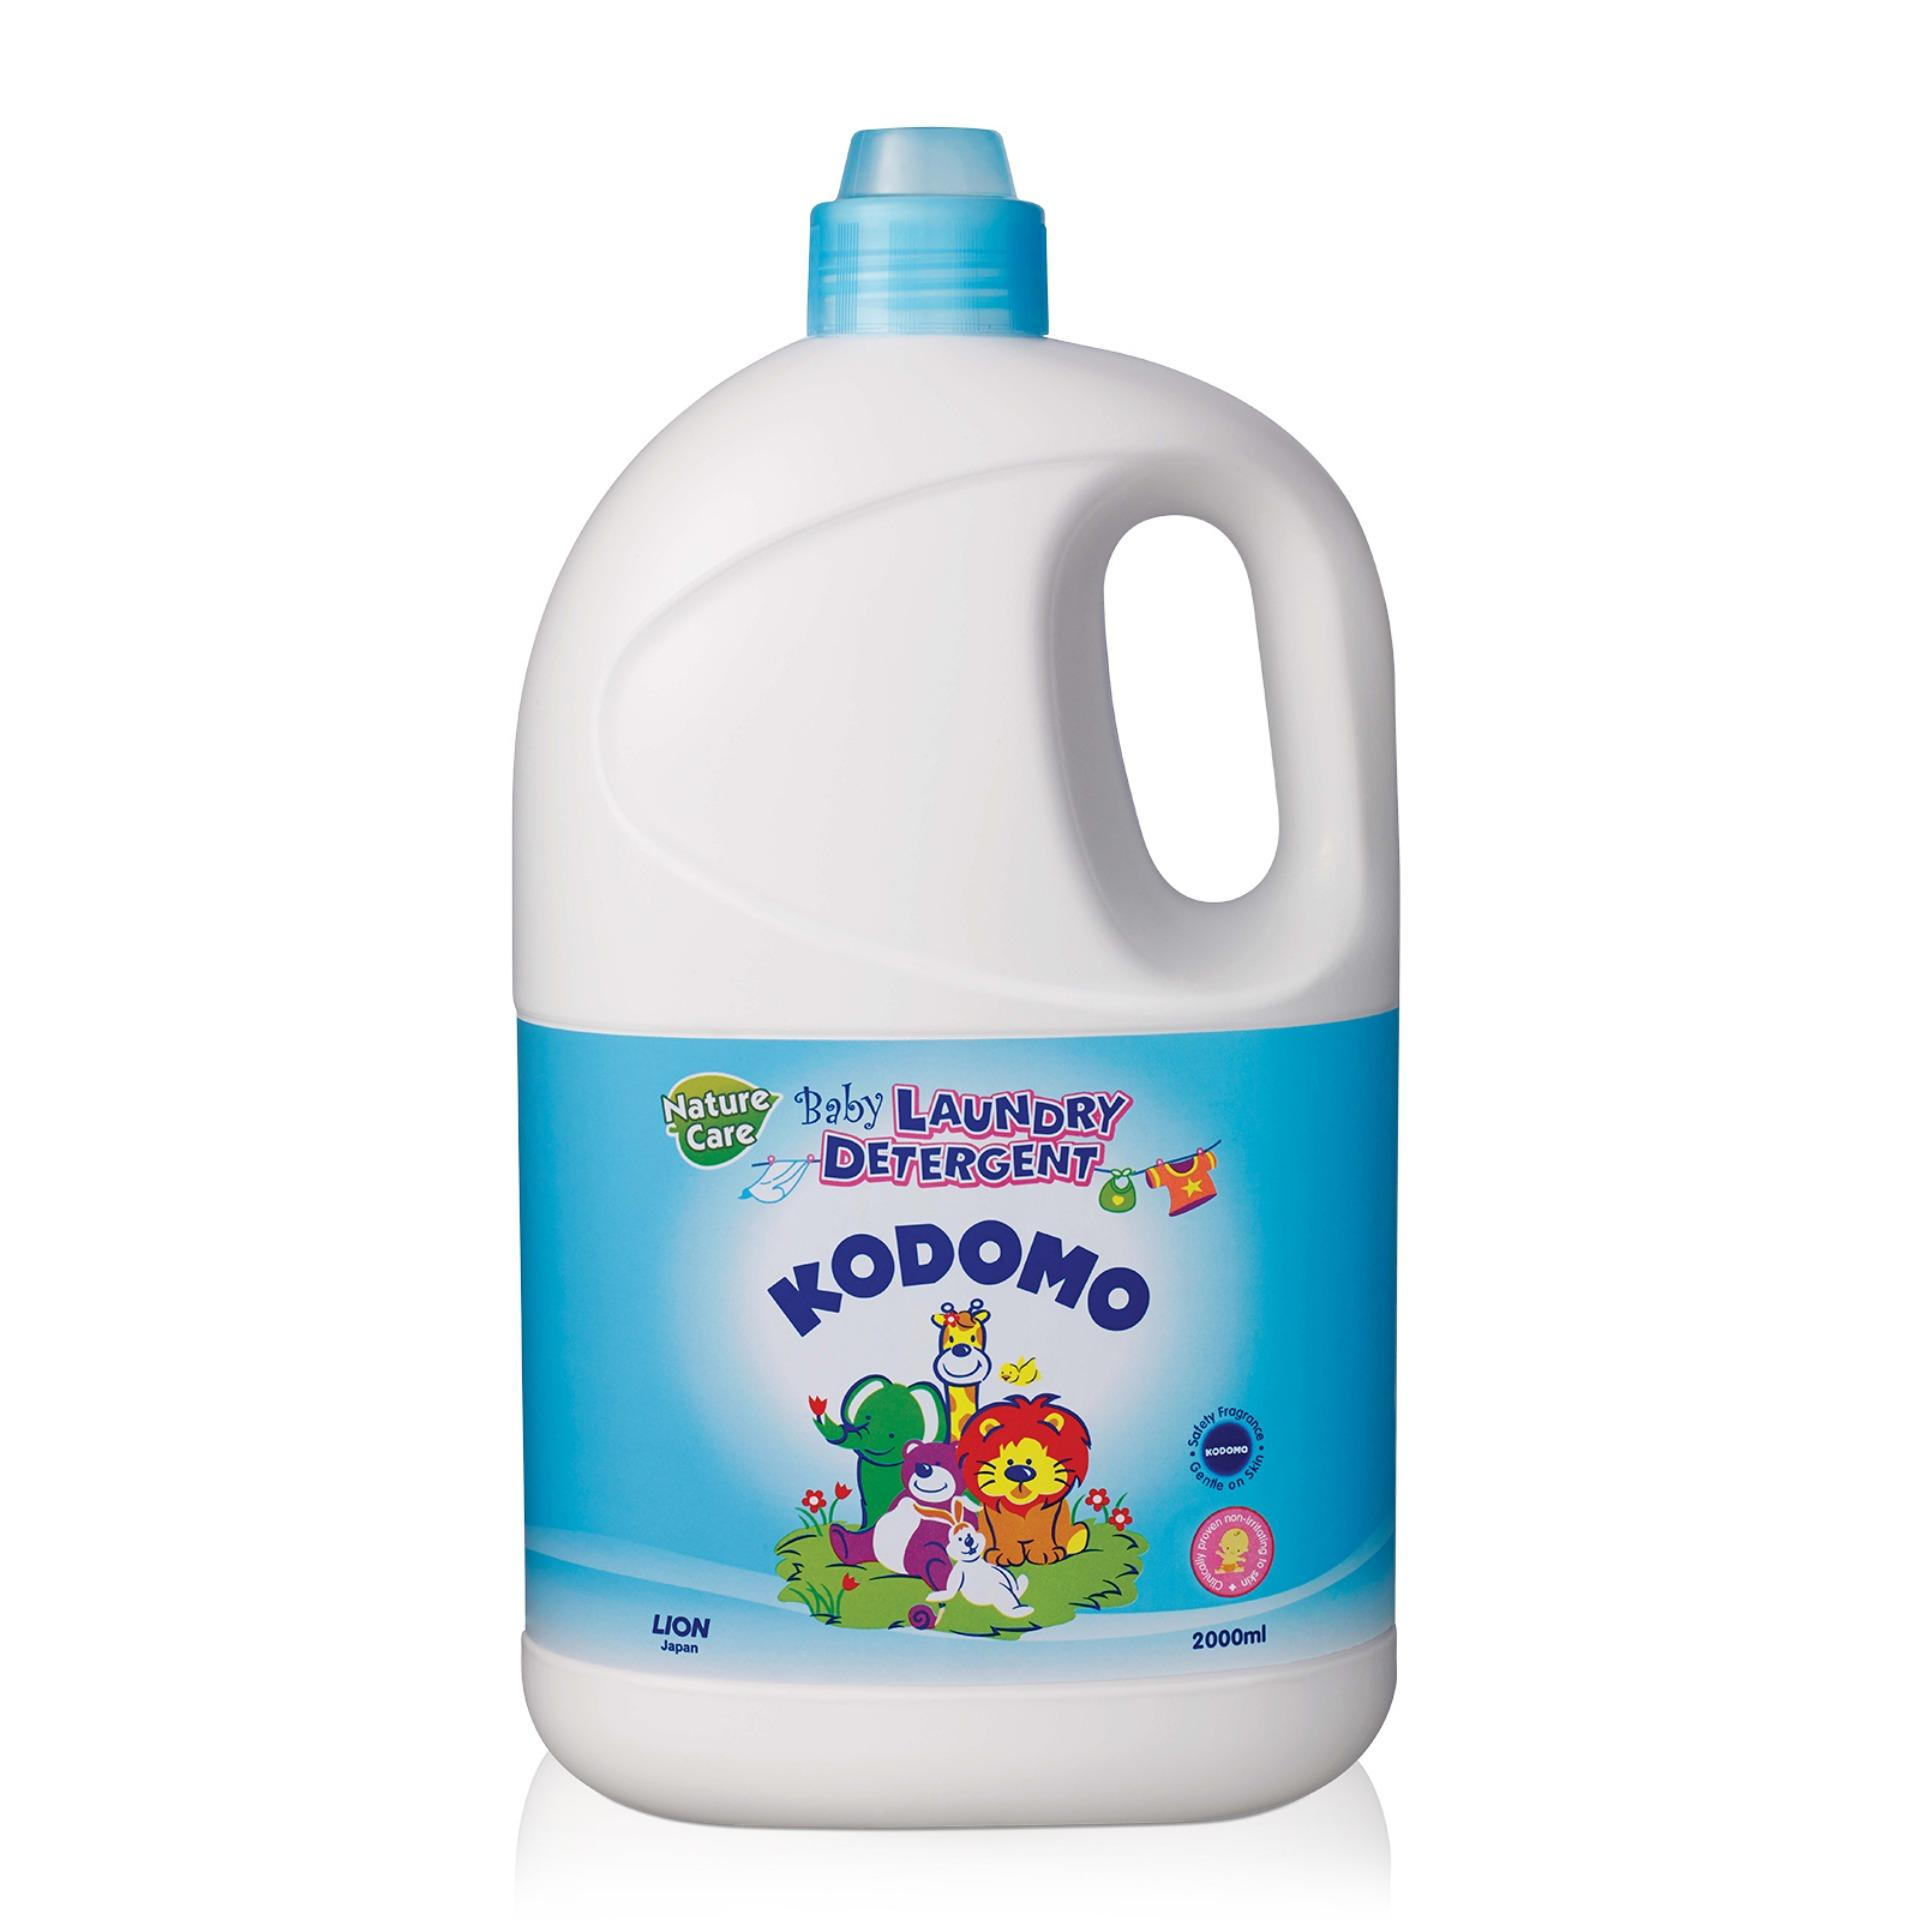 Who Sells The Cheapest Kodomo Baby Laundry Detergent Nature Care 2L Online